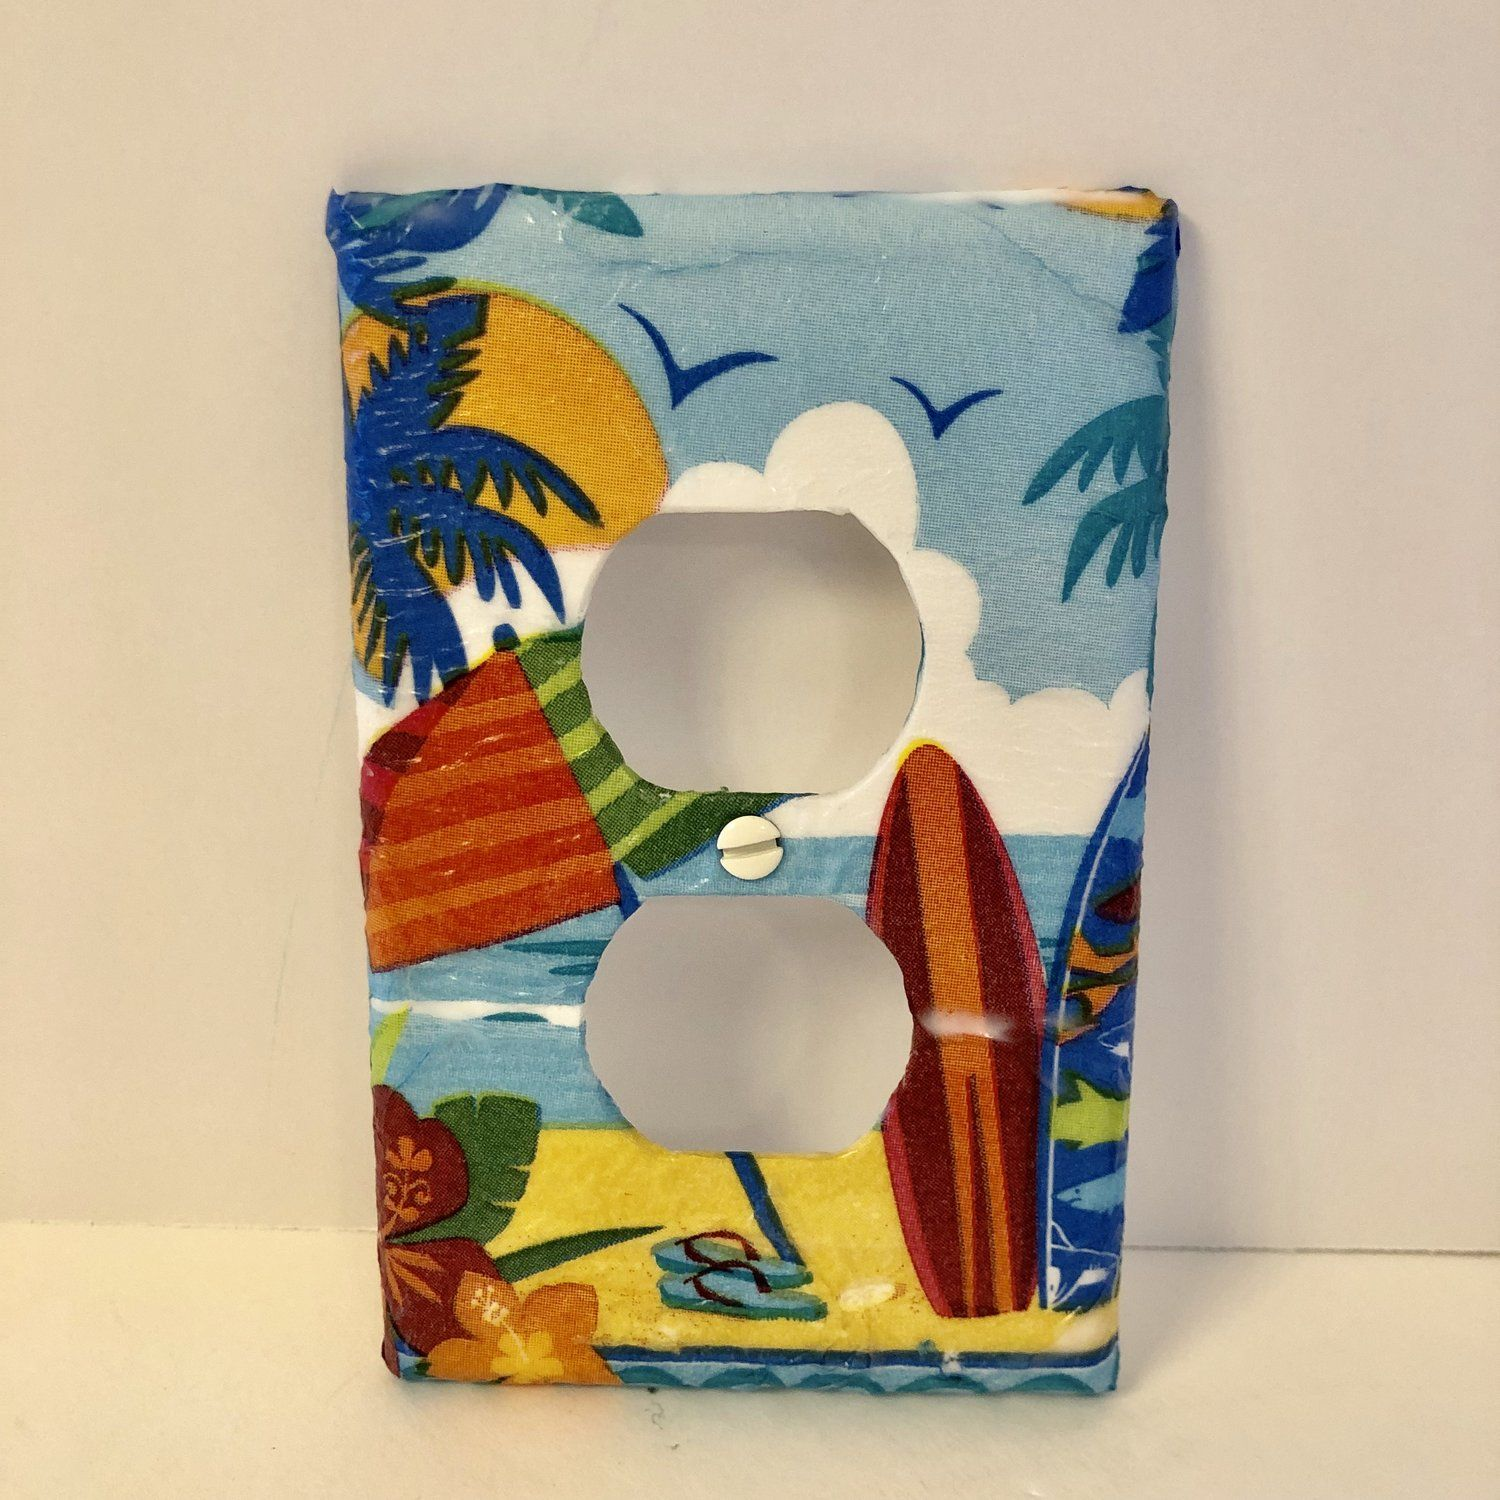 Decorative Wall Plates Outlet Covers Othertreasures Gone Coastal Plates On Wall Electrical Outlet Covers Outlet Covers